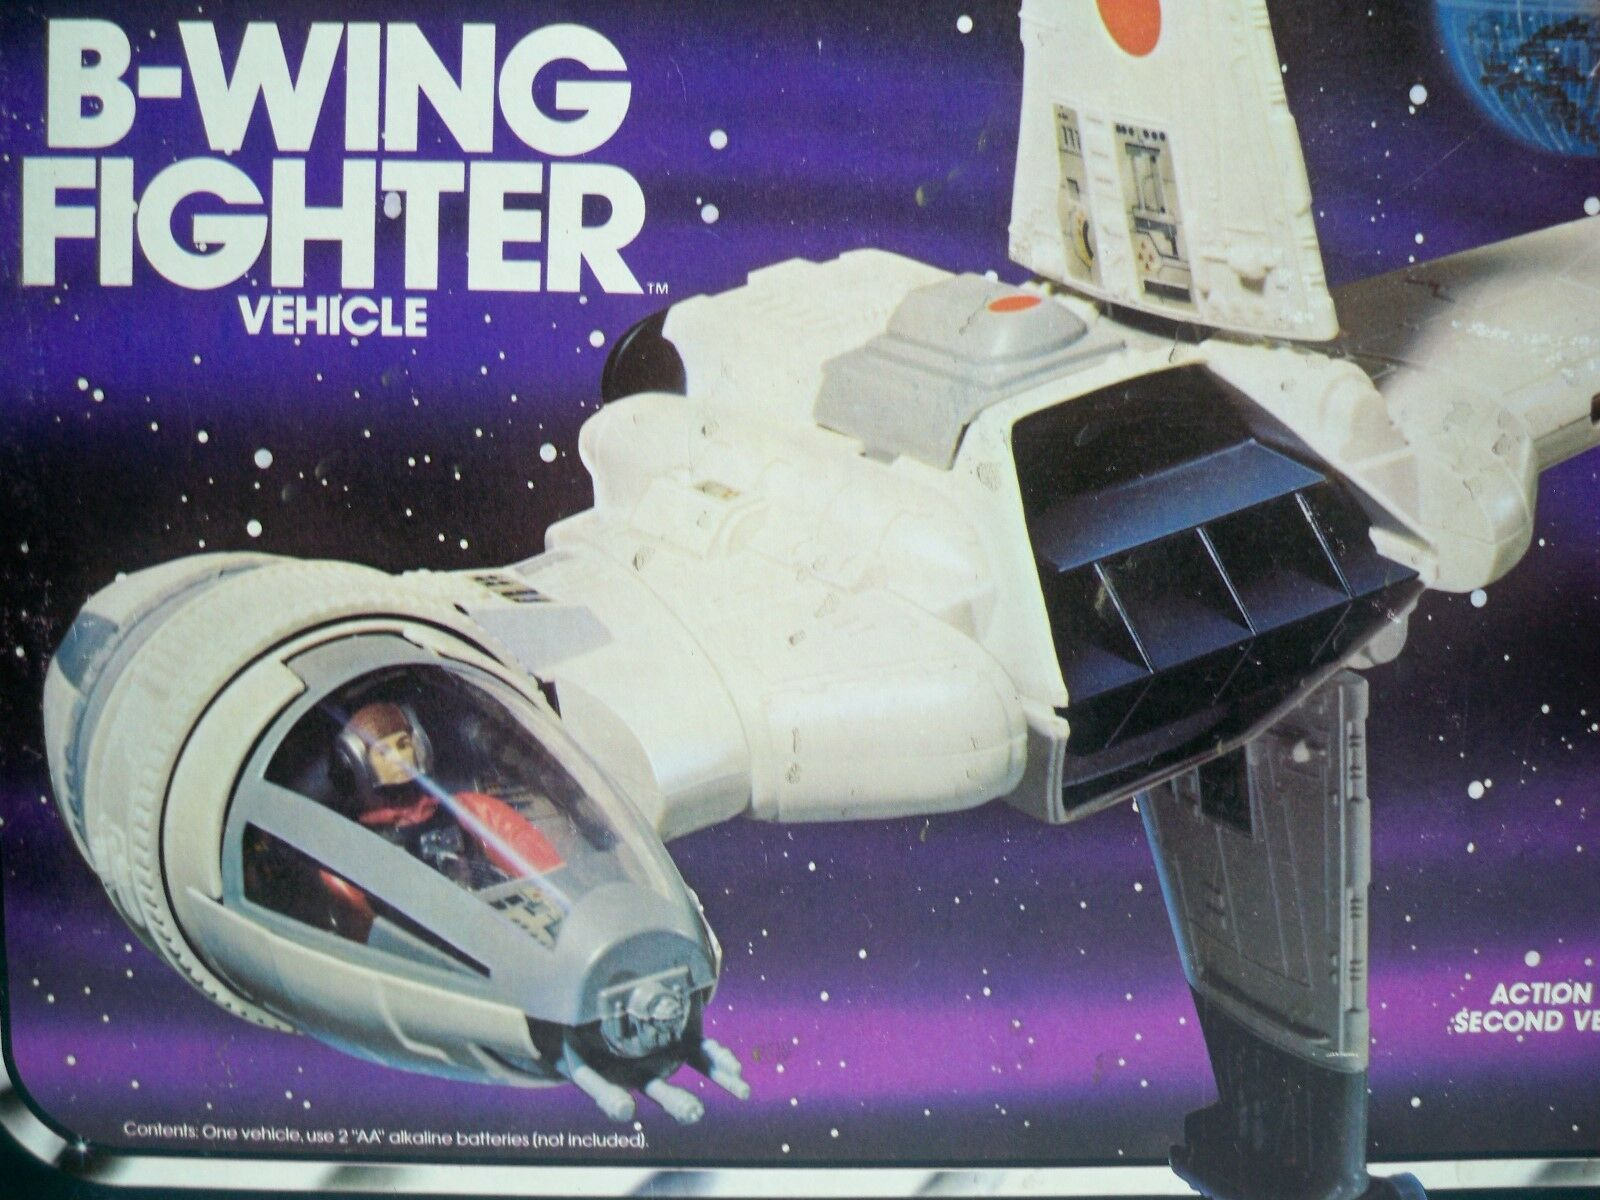 K1705891 B-WING FIGHTER 100% 100% 100% COMPLETE IN BOX W INSTRUCTIONS STAR WARS ORIGINAL 080392